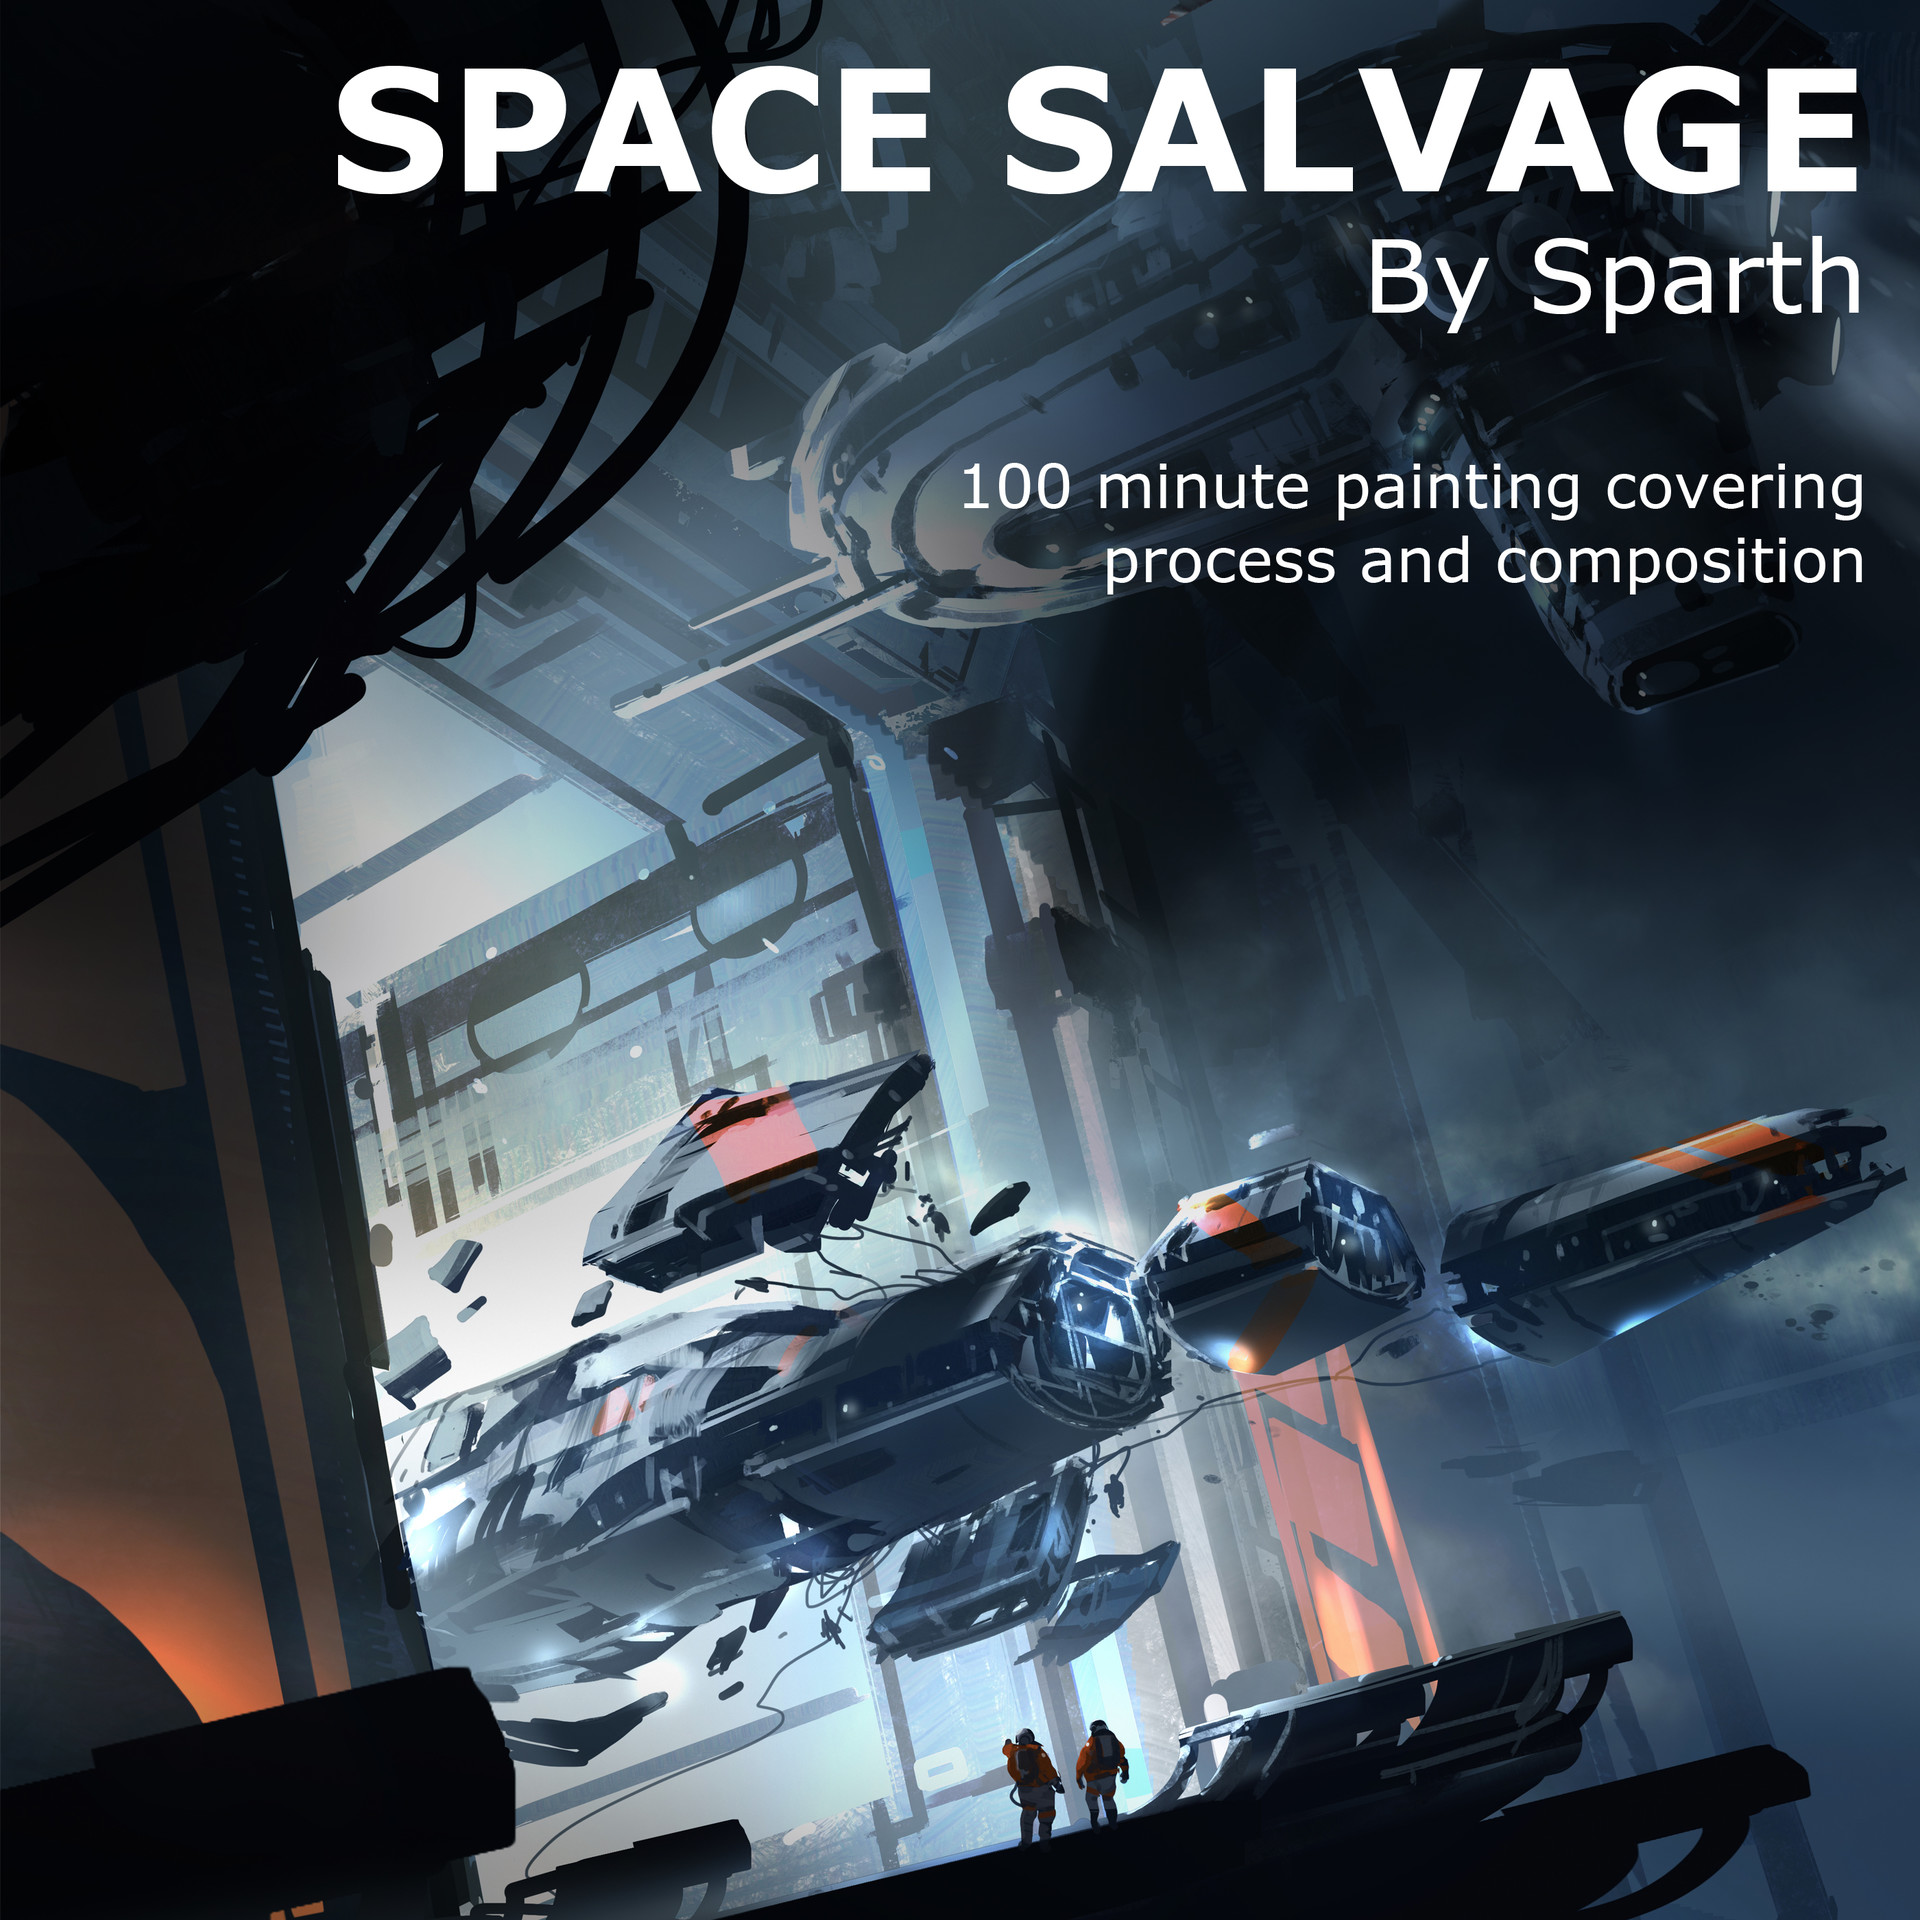 Sparth space salvage cover